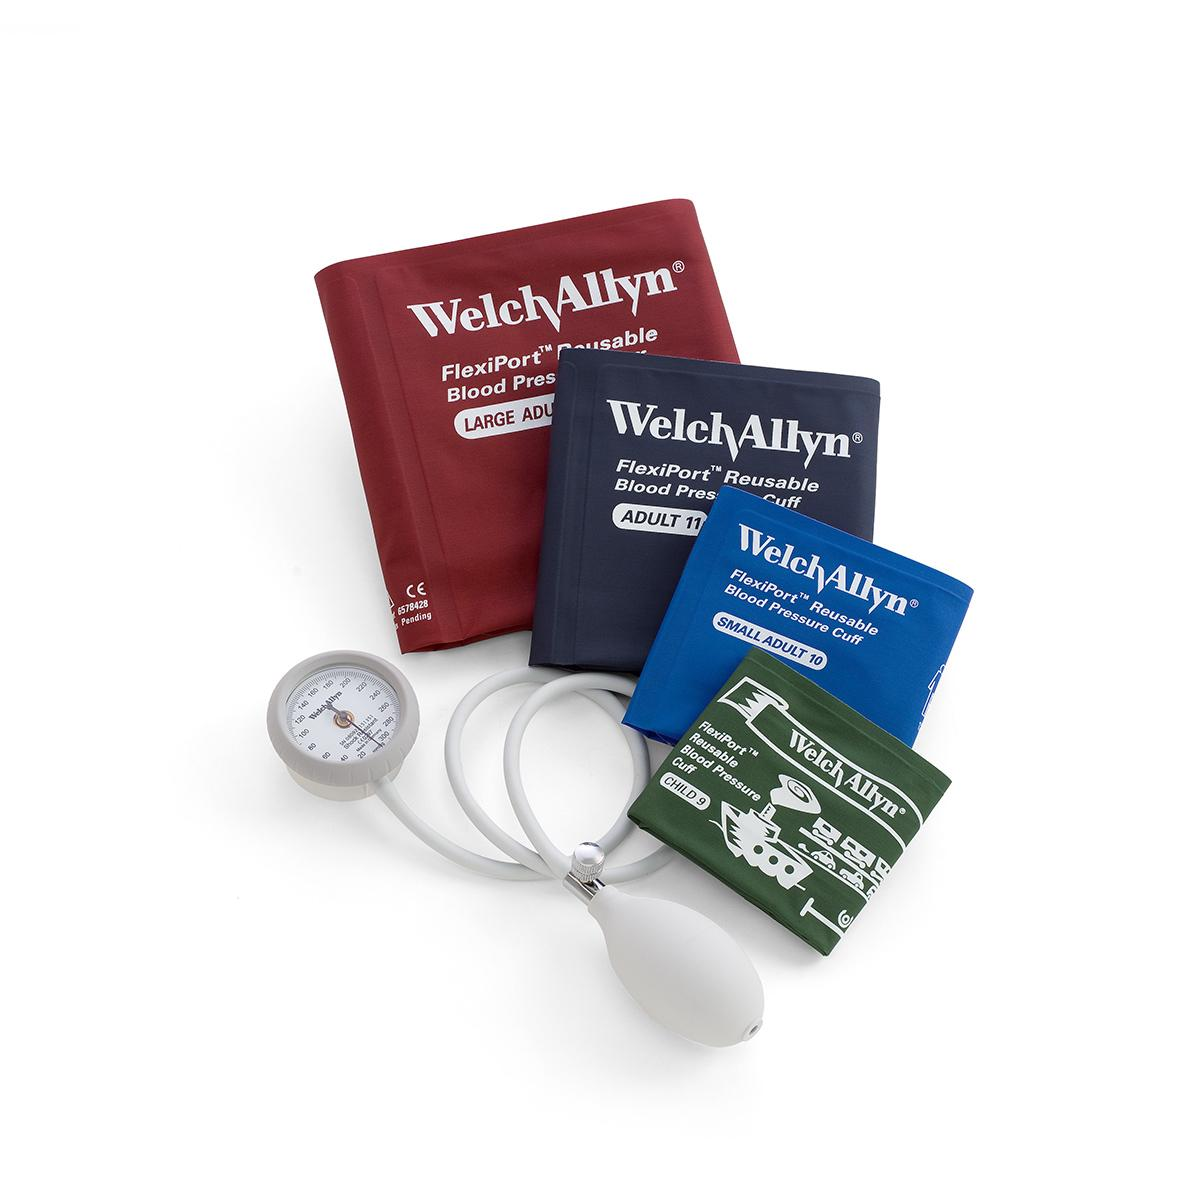 A Welch Allyn D244 aneroid with compatible Welch Allyn FlexiPort blood pressure cuffs, shown in various sizes and colors